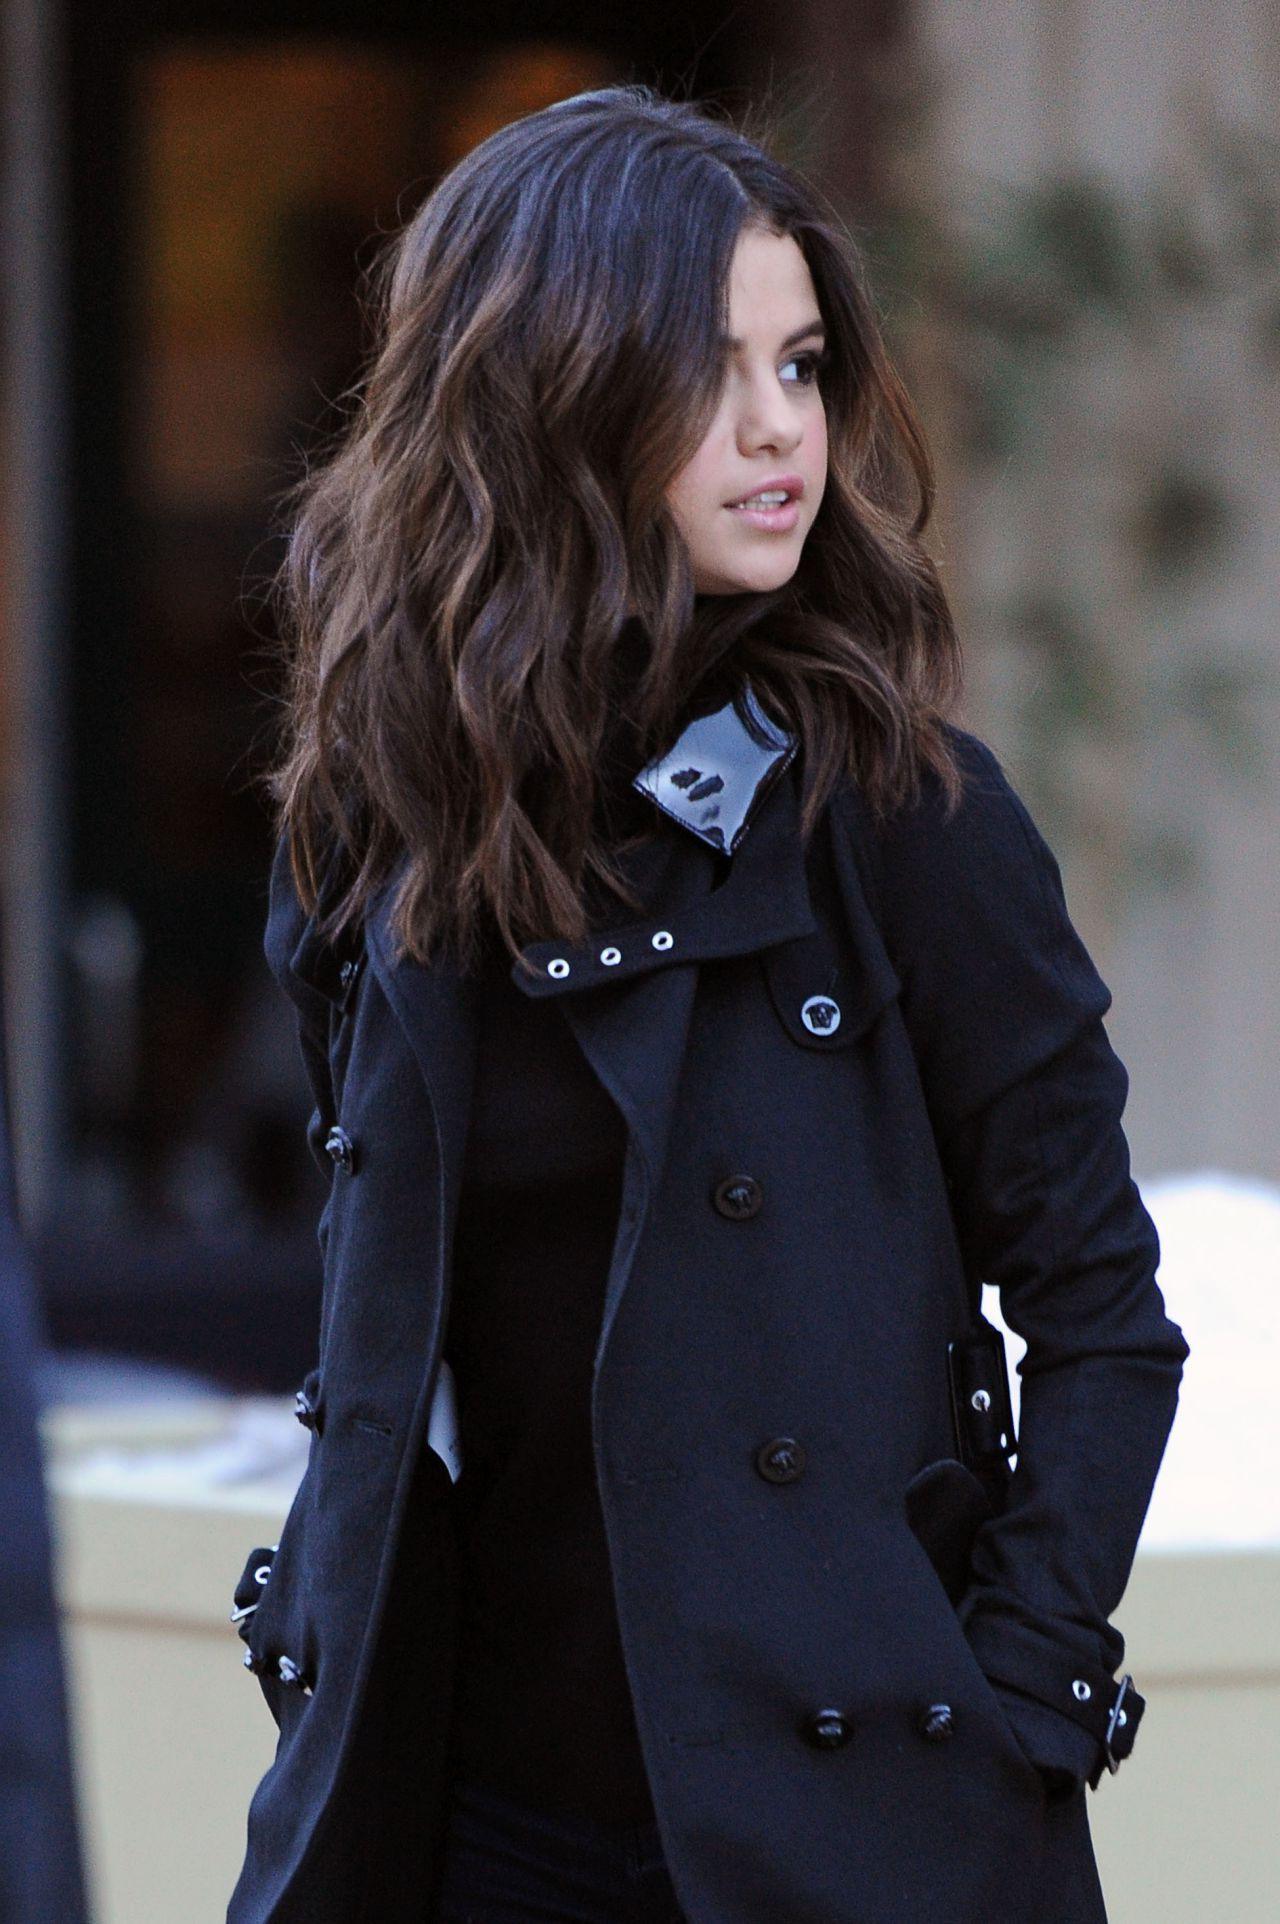 Selena Gomez Hair (View 15 of 20)